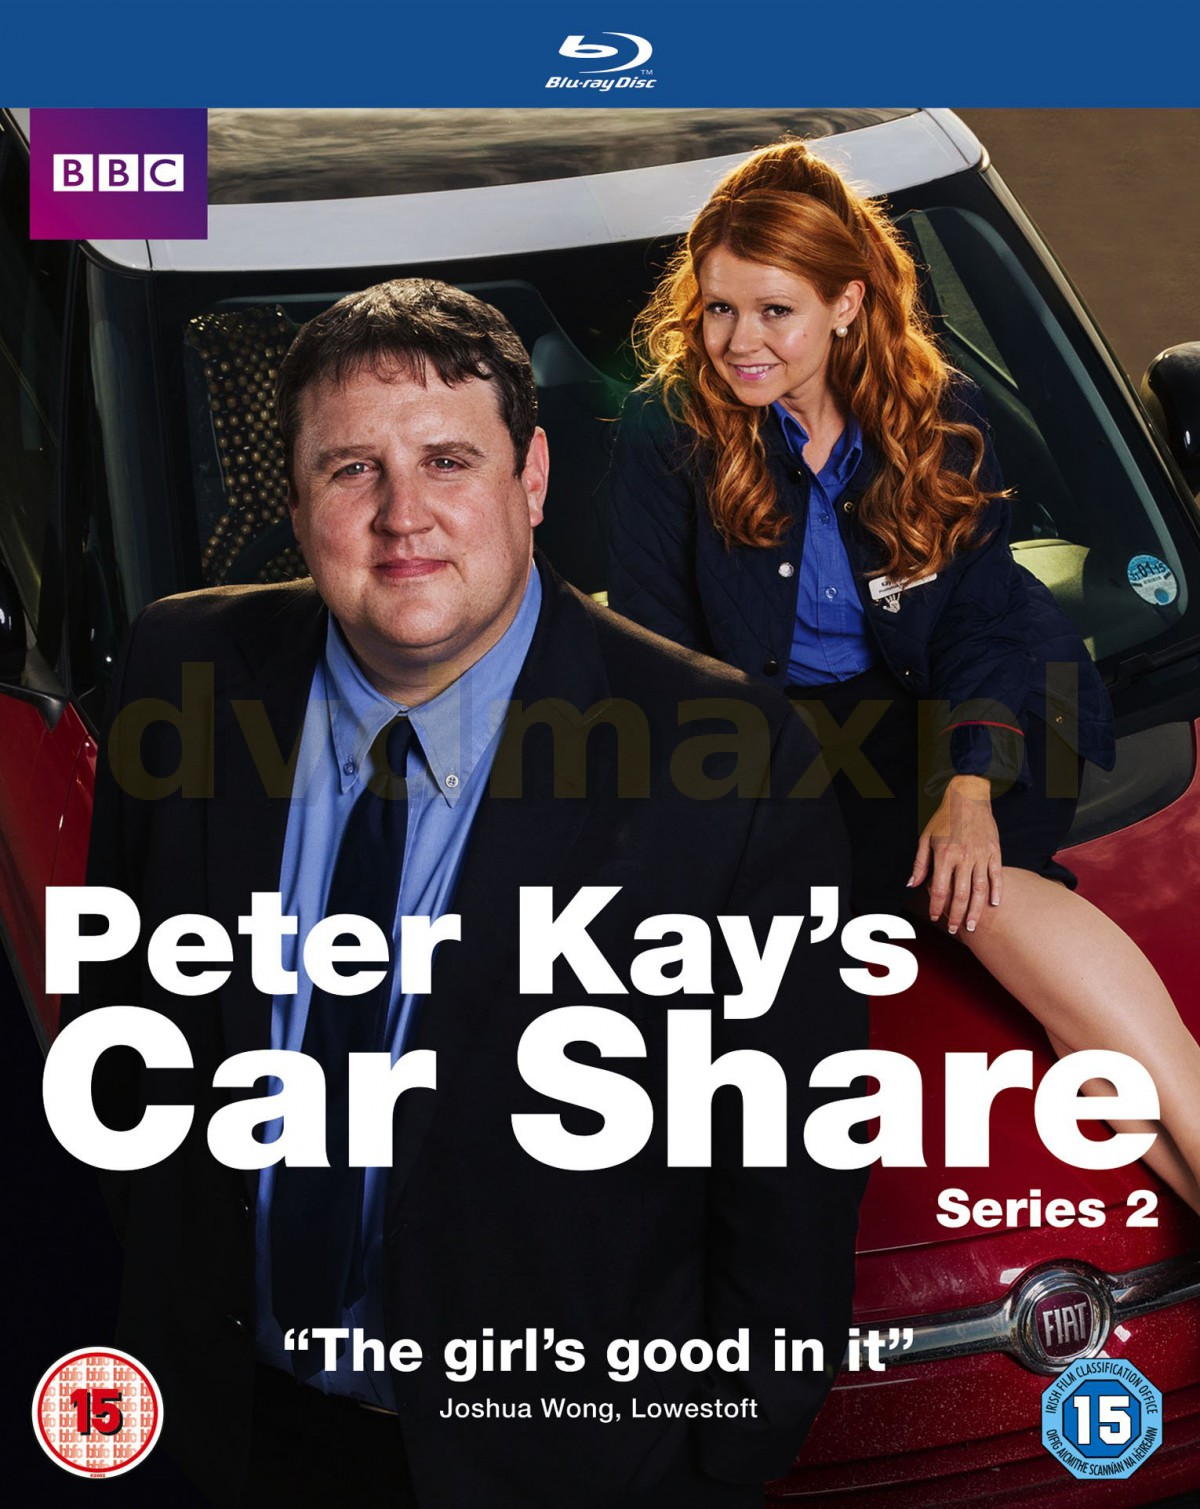 Peter Kay's Car Share Season 2 (BBC) [Blu-Ray]